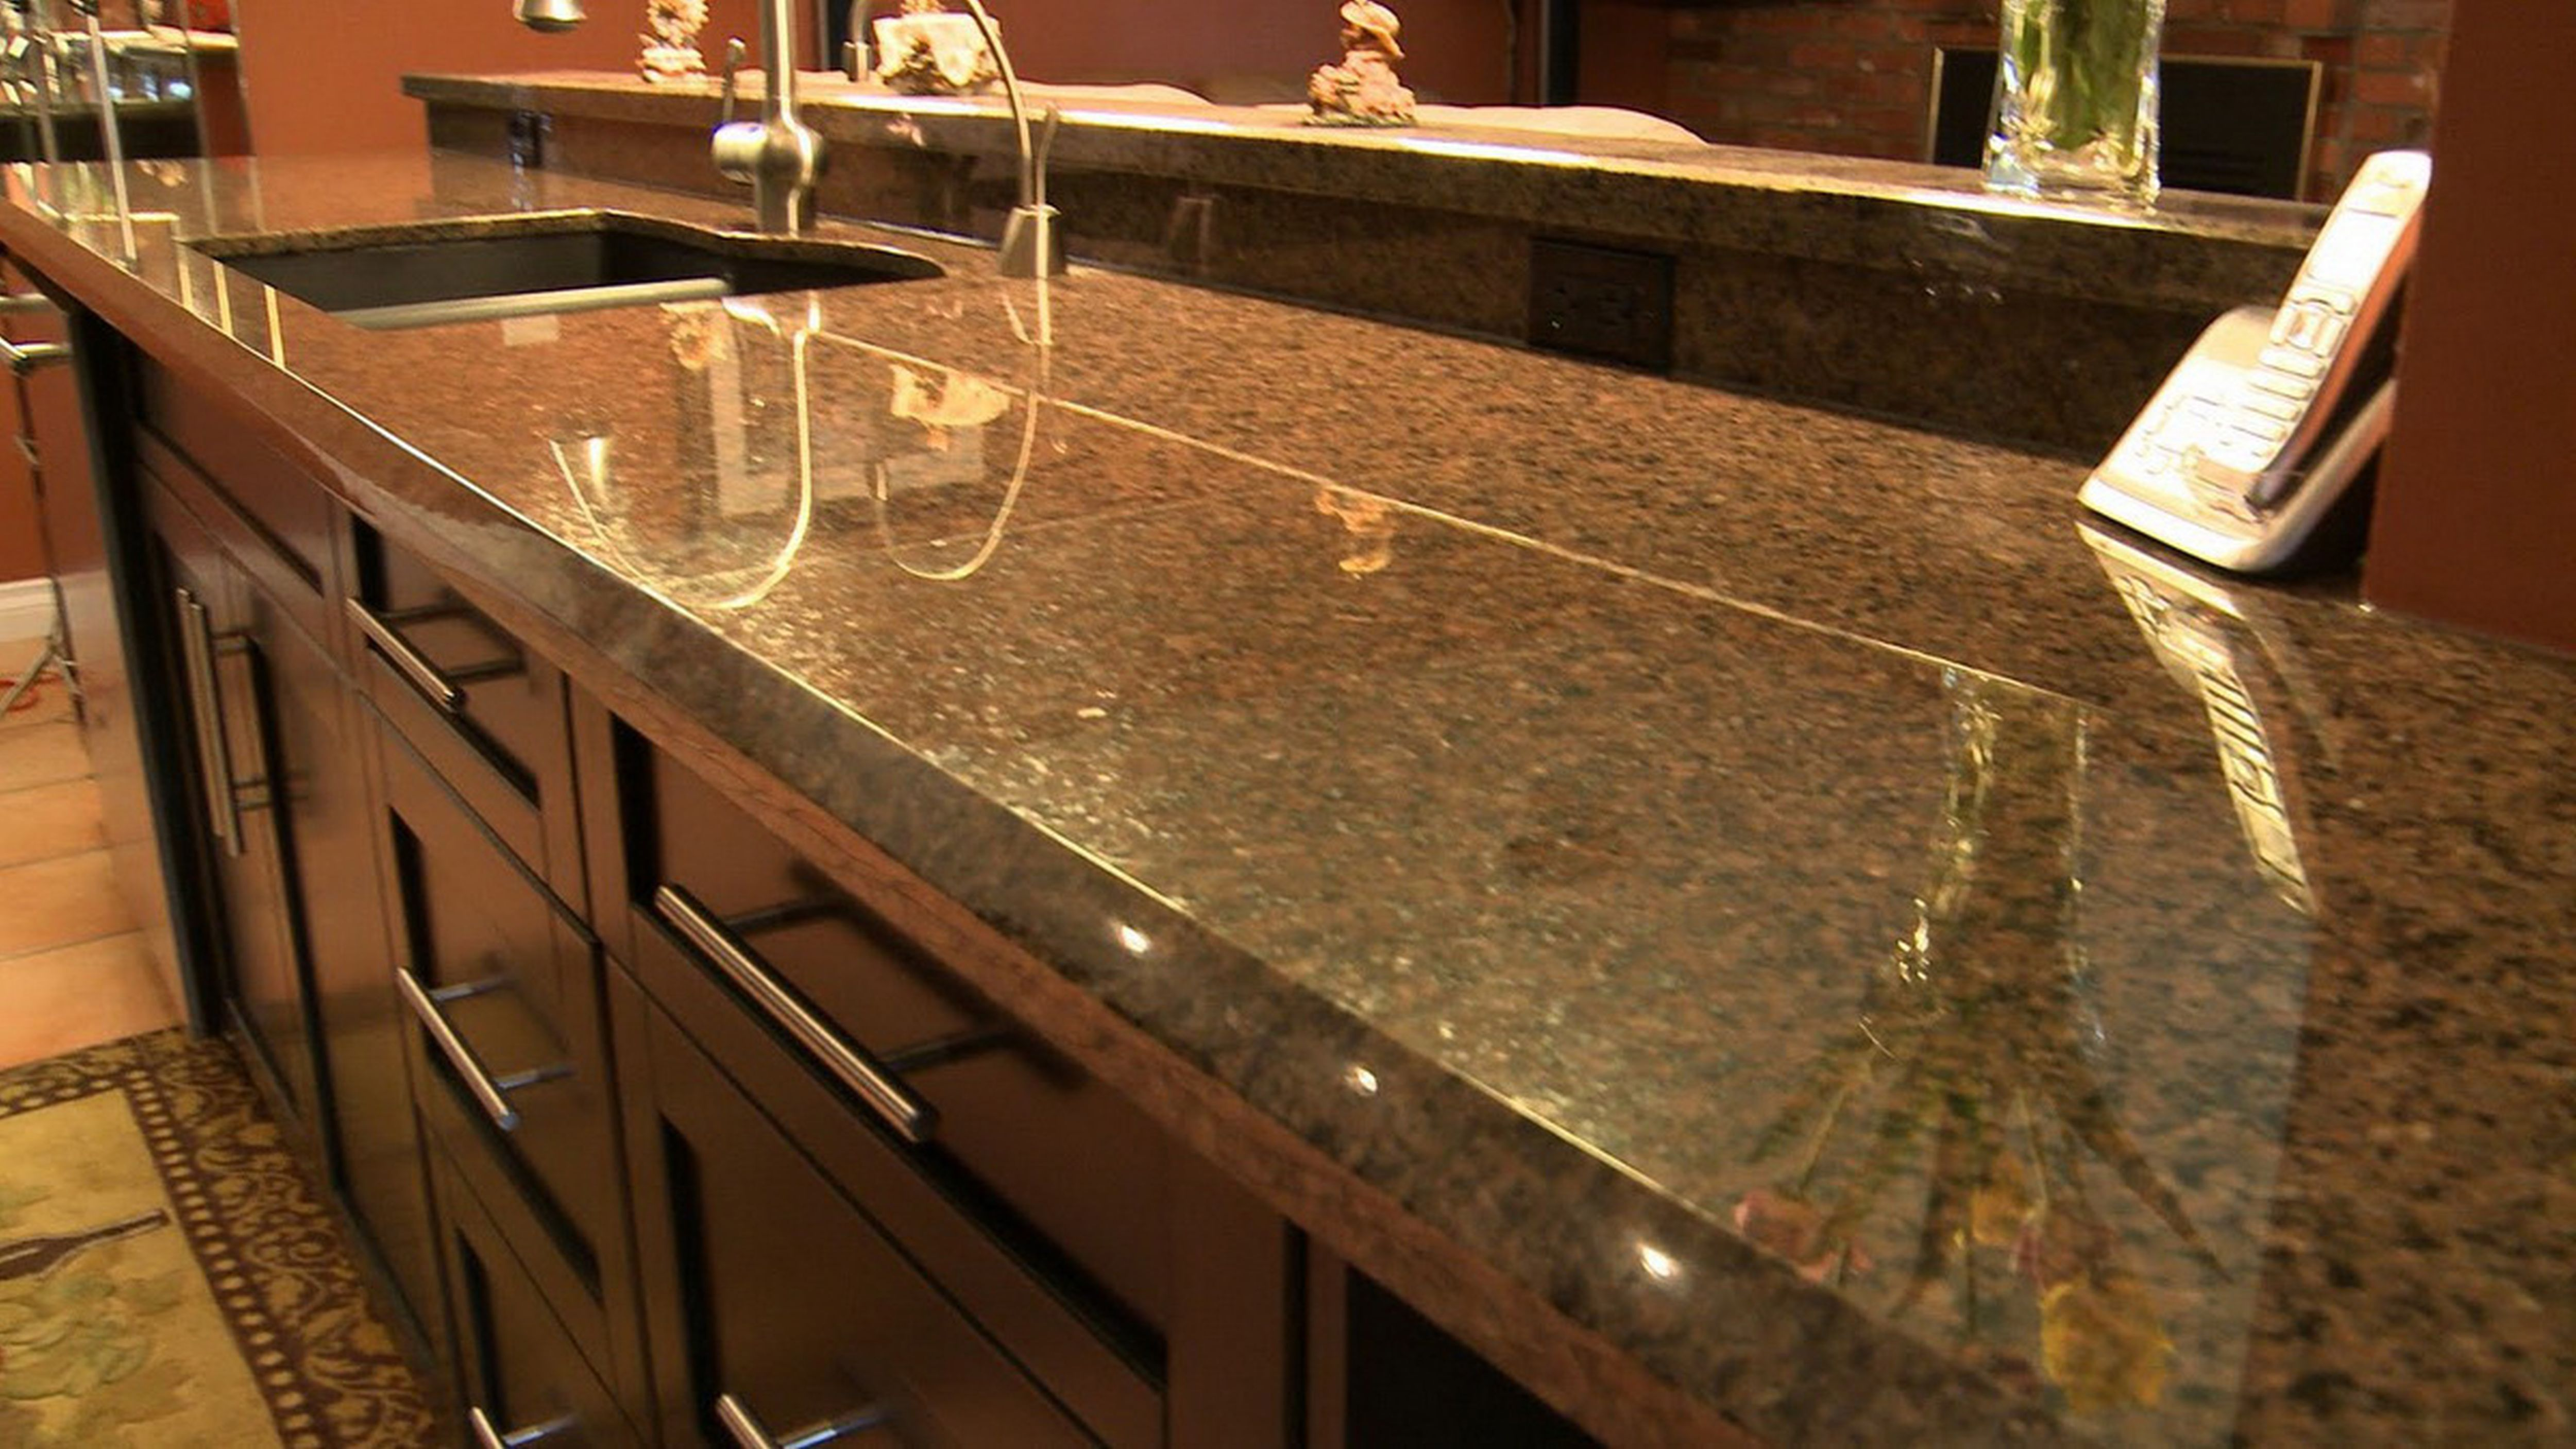 marble kitchen countertops surface cheap quartz worktops brown white granite prices wholesale kashmir solid dark countertop for decoration slabs cost engineered